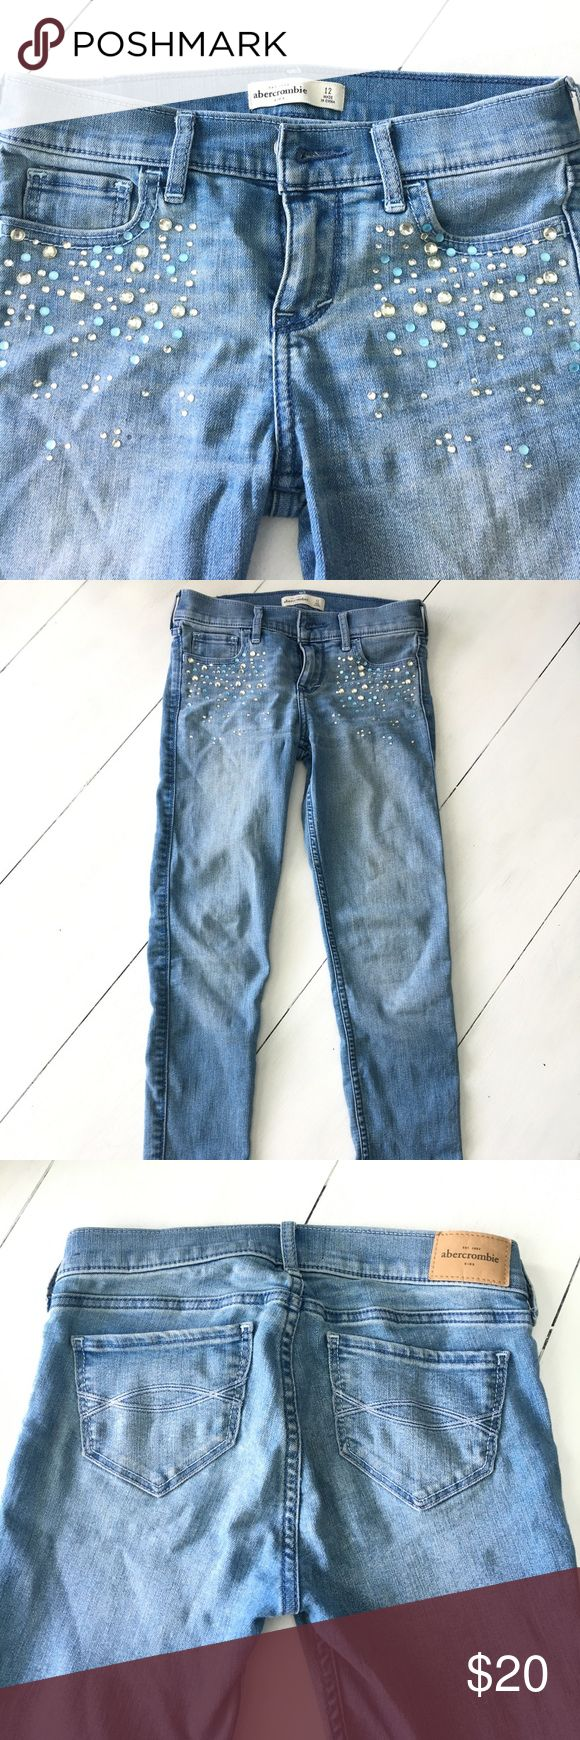 Abercrombie Girls sz 12 Jeweled skinny jeans EUC These jeans are so cute! Great designer look from Abercrombie kids. These are a medium blue wash and Skinny fit. Size girls 12. EUC abercrombie kids Bottoms Jeans